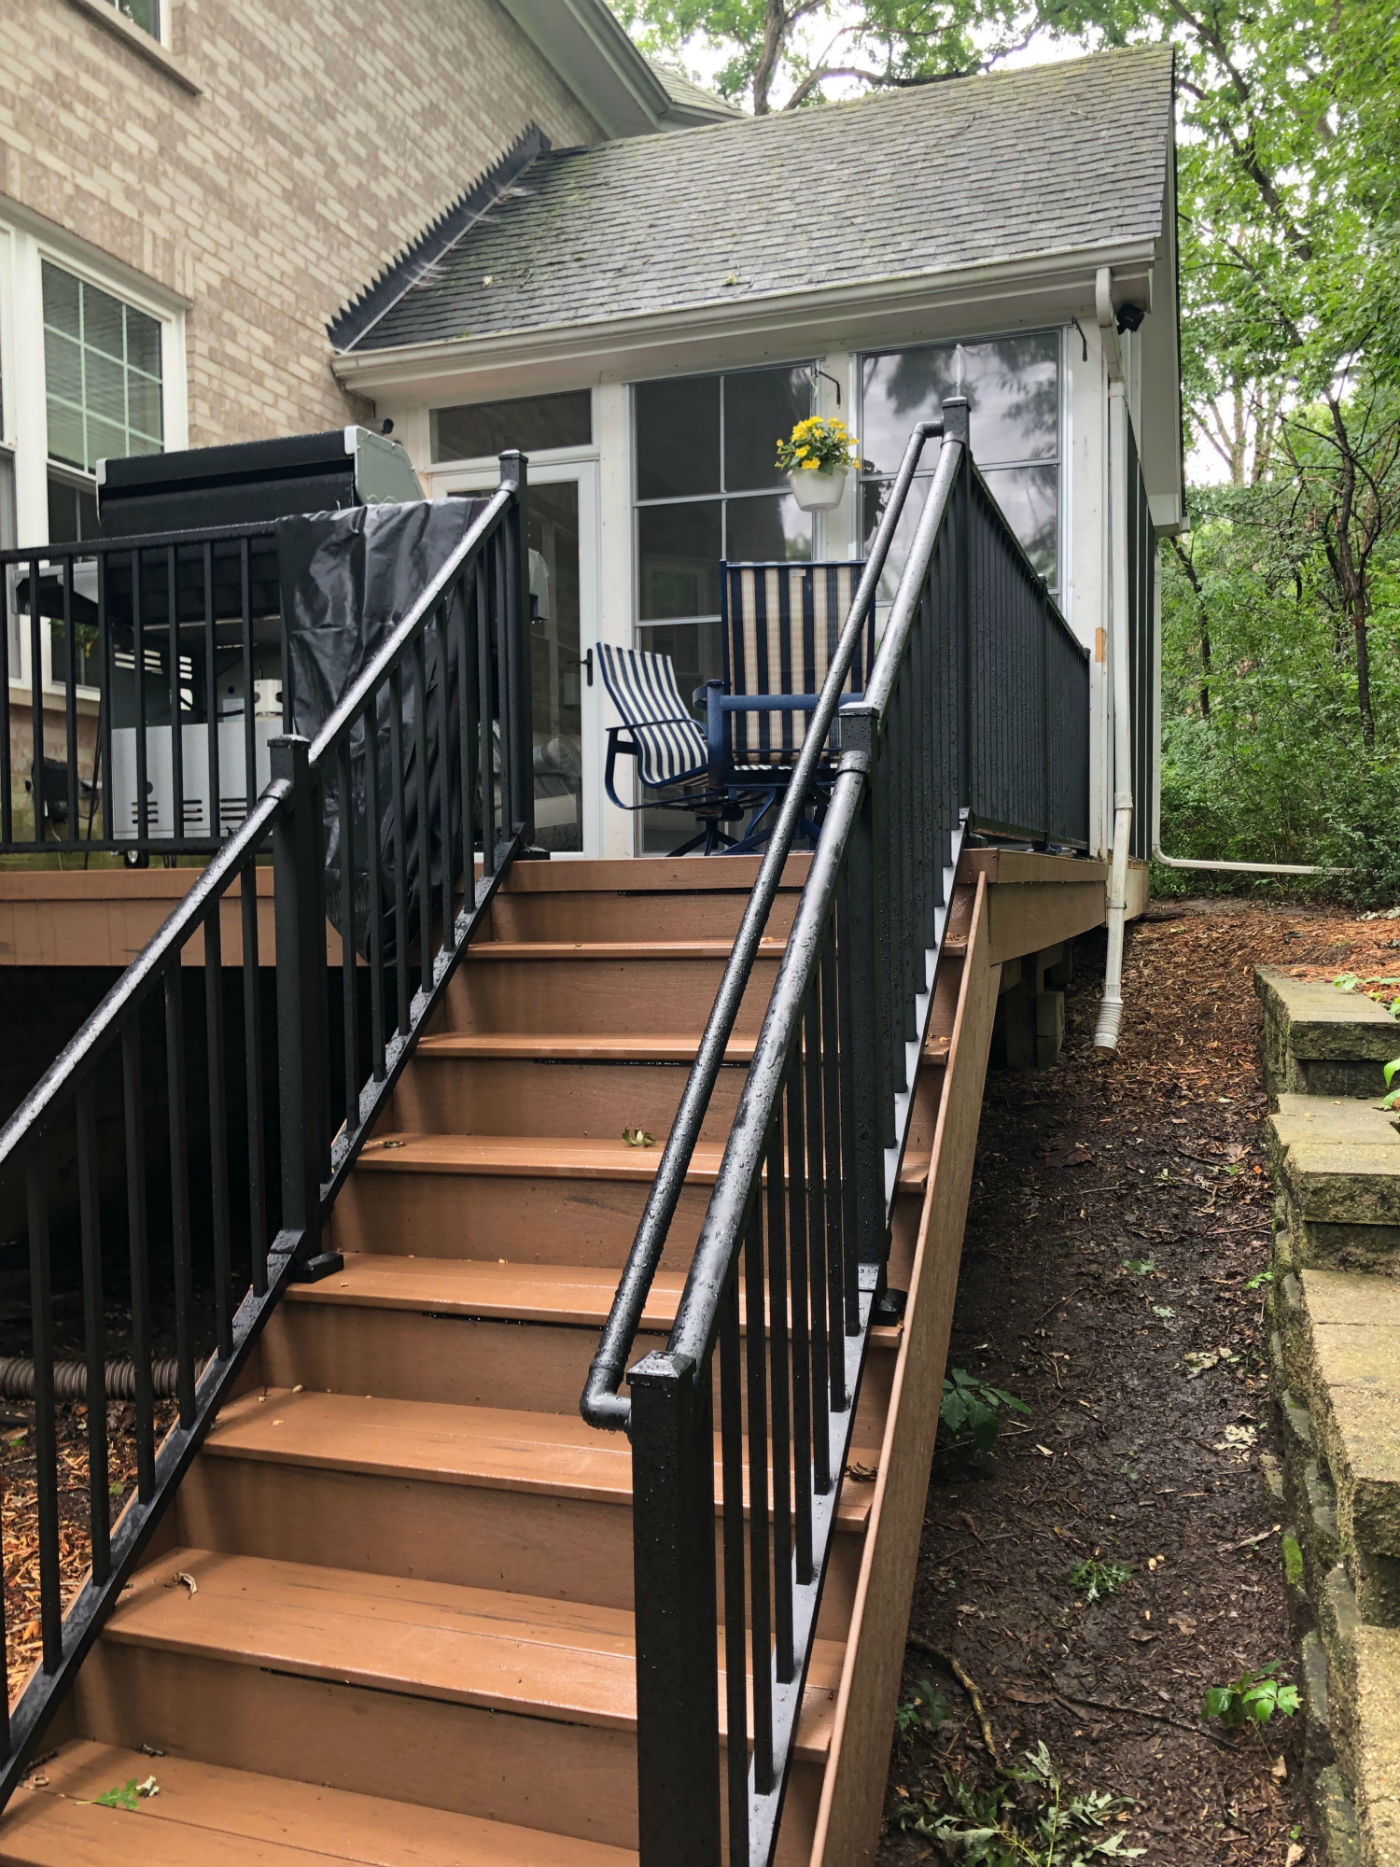 TimberTech low-maintenance deck